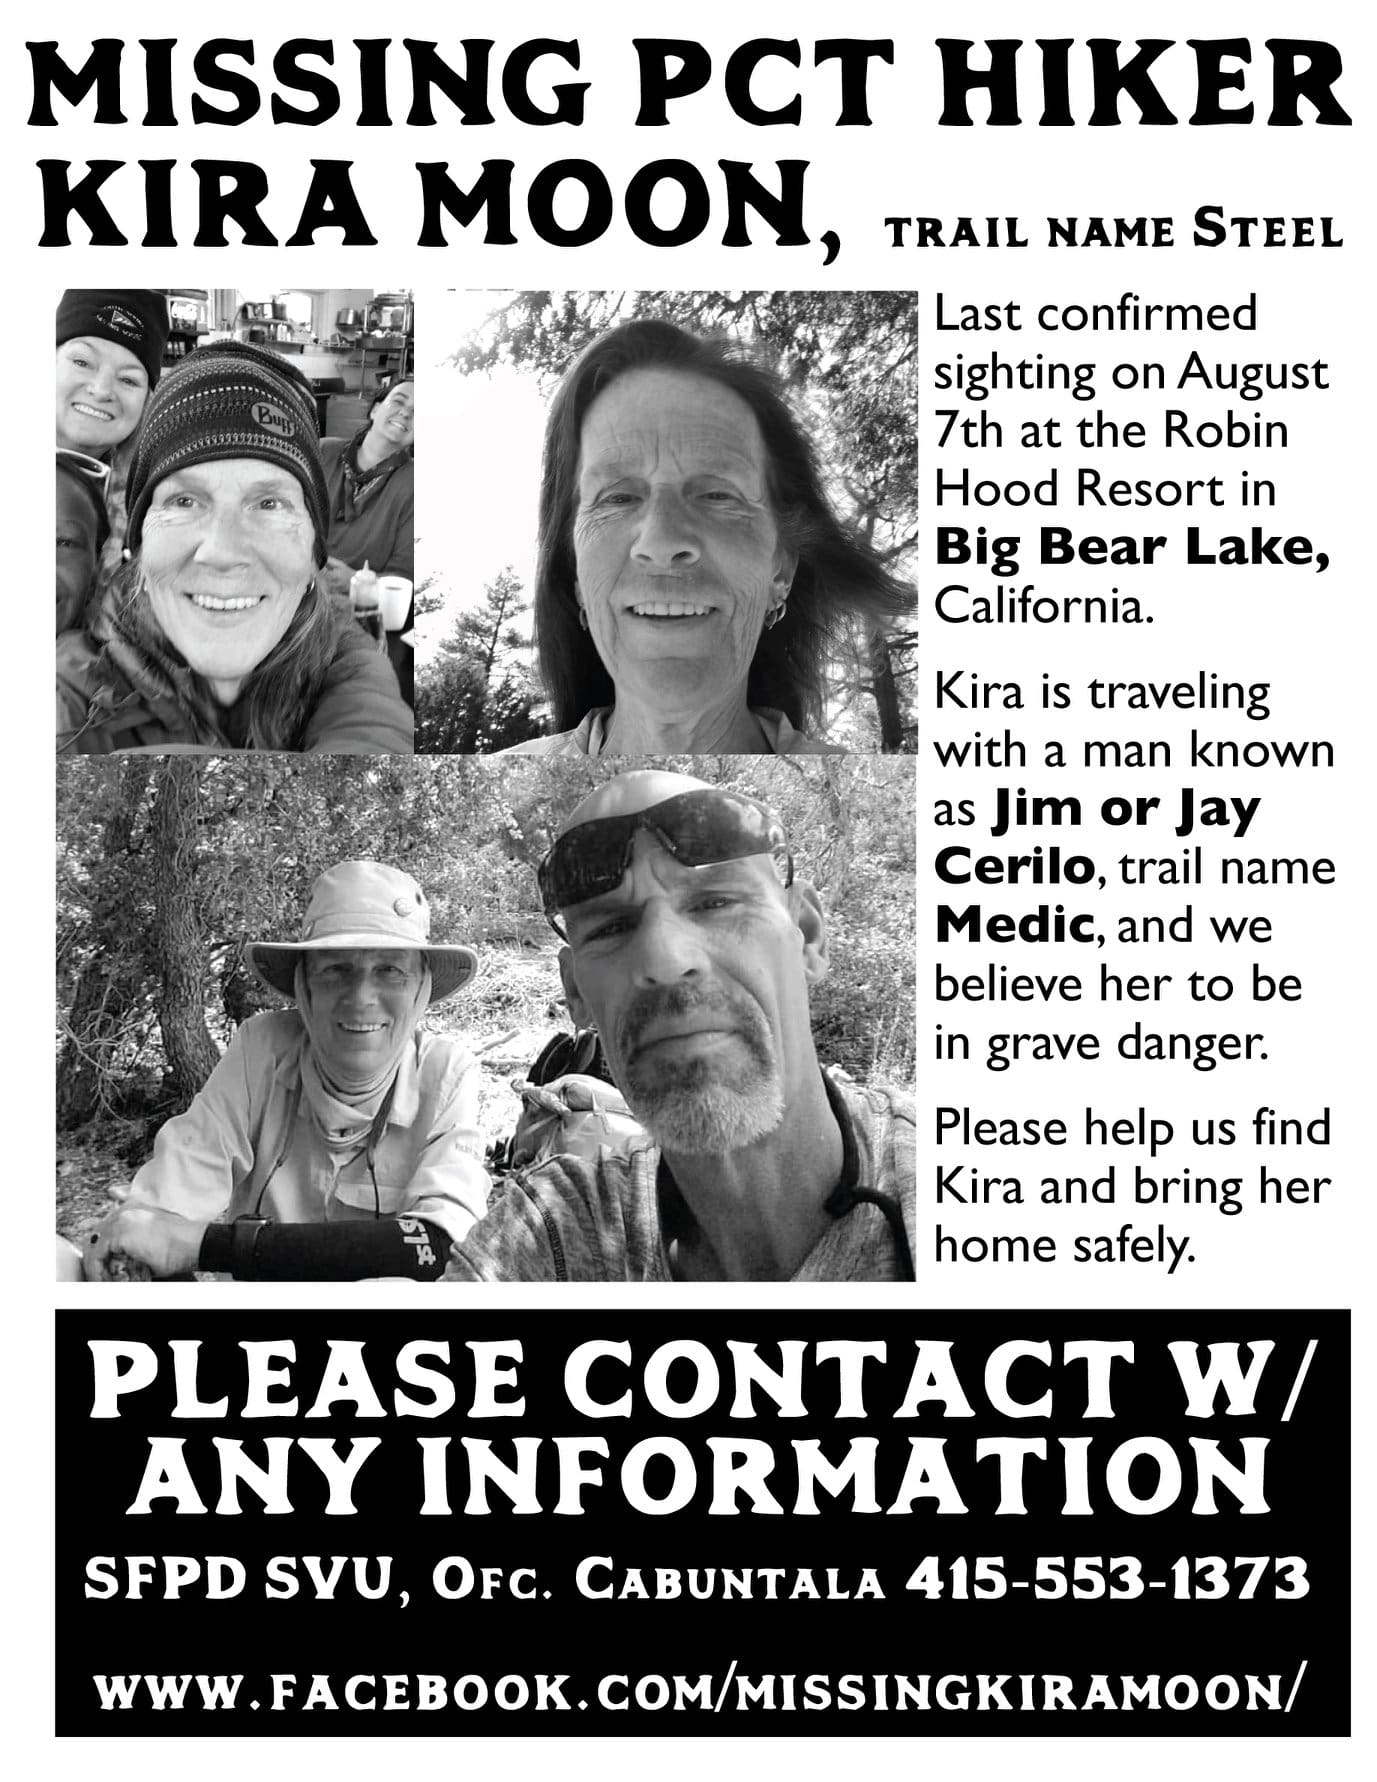 Kira moon, missing, pct, pacific crest trail, steel, Jim cerilo, jay cerilo